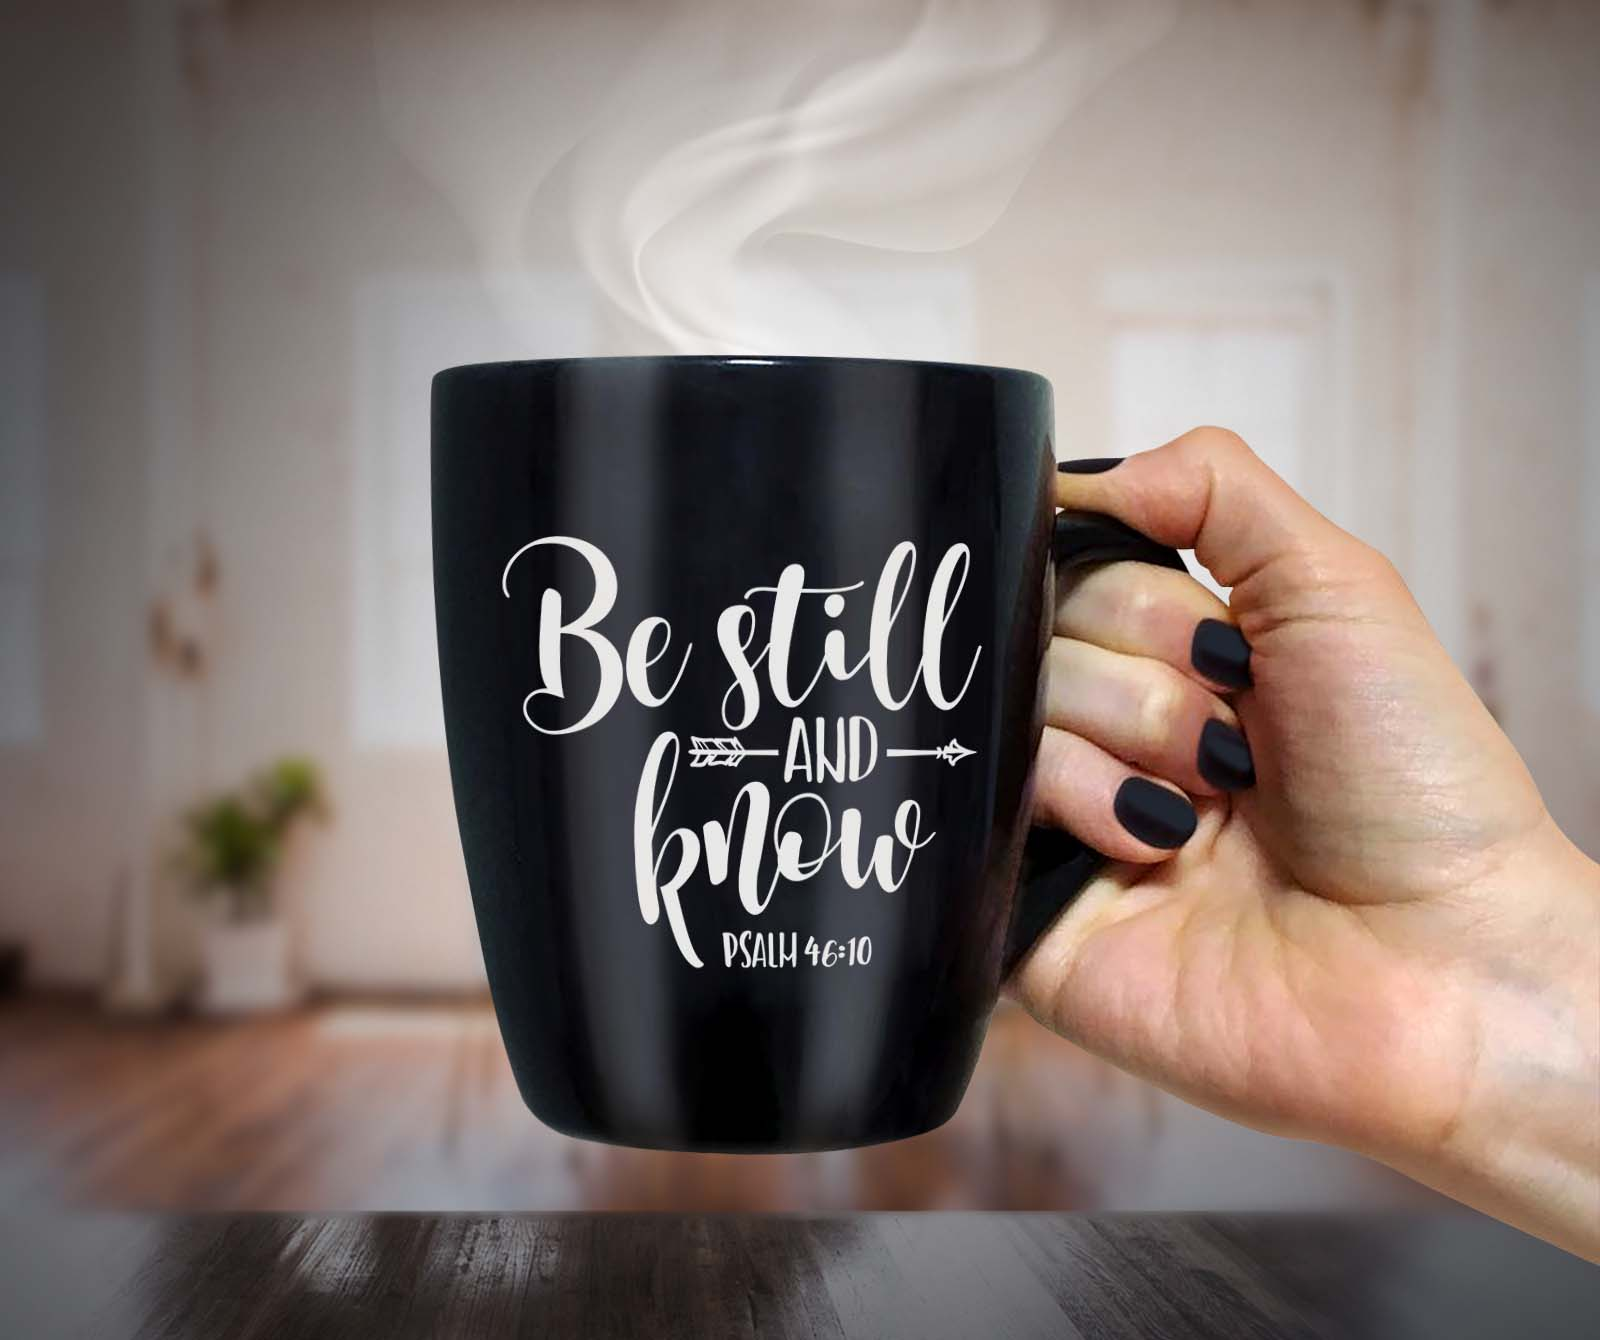 Be still and know Arrow SVG Bible verse SVG DXF PNG EPS Psalm 46:10 example image 3